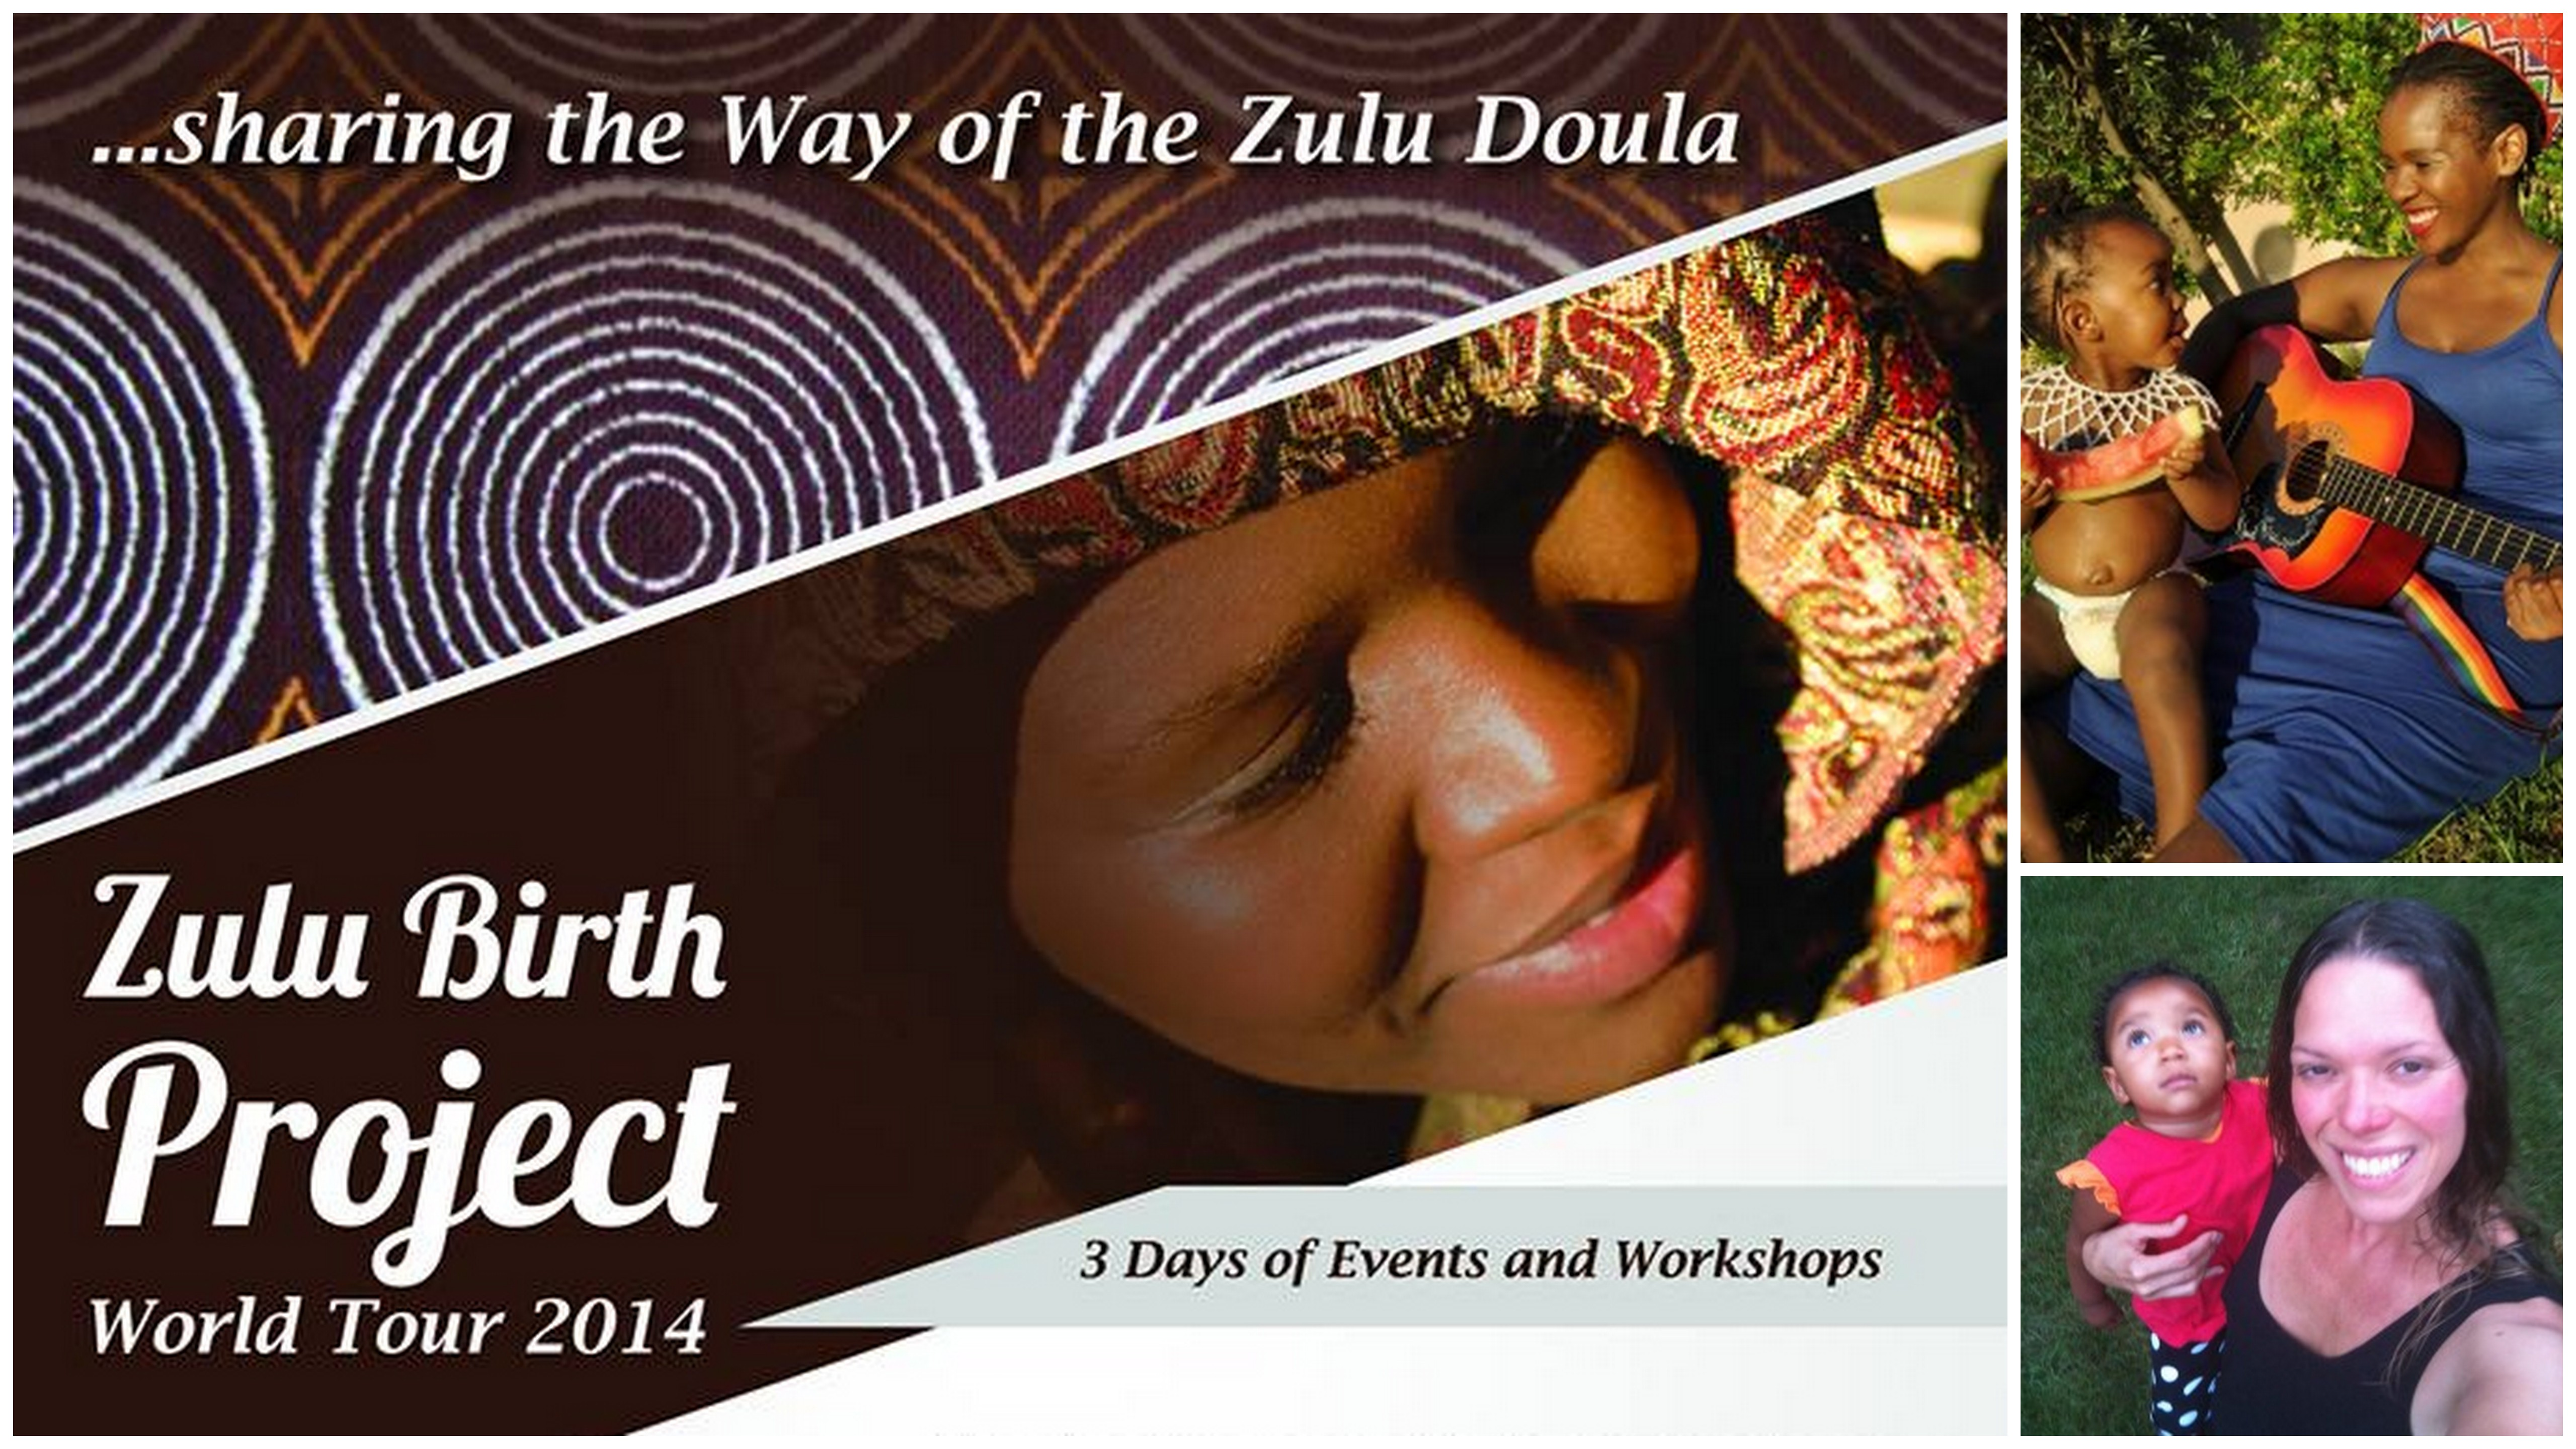 cfbff17a4d2 Recently the Zulu Birth Project was brought to our attention and we simply  could not resist the urge to reach out to them. As Grand Rapids most  diverse ...